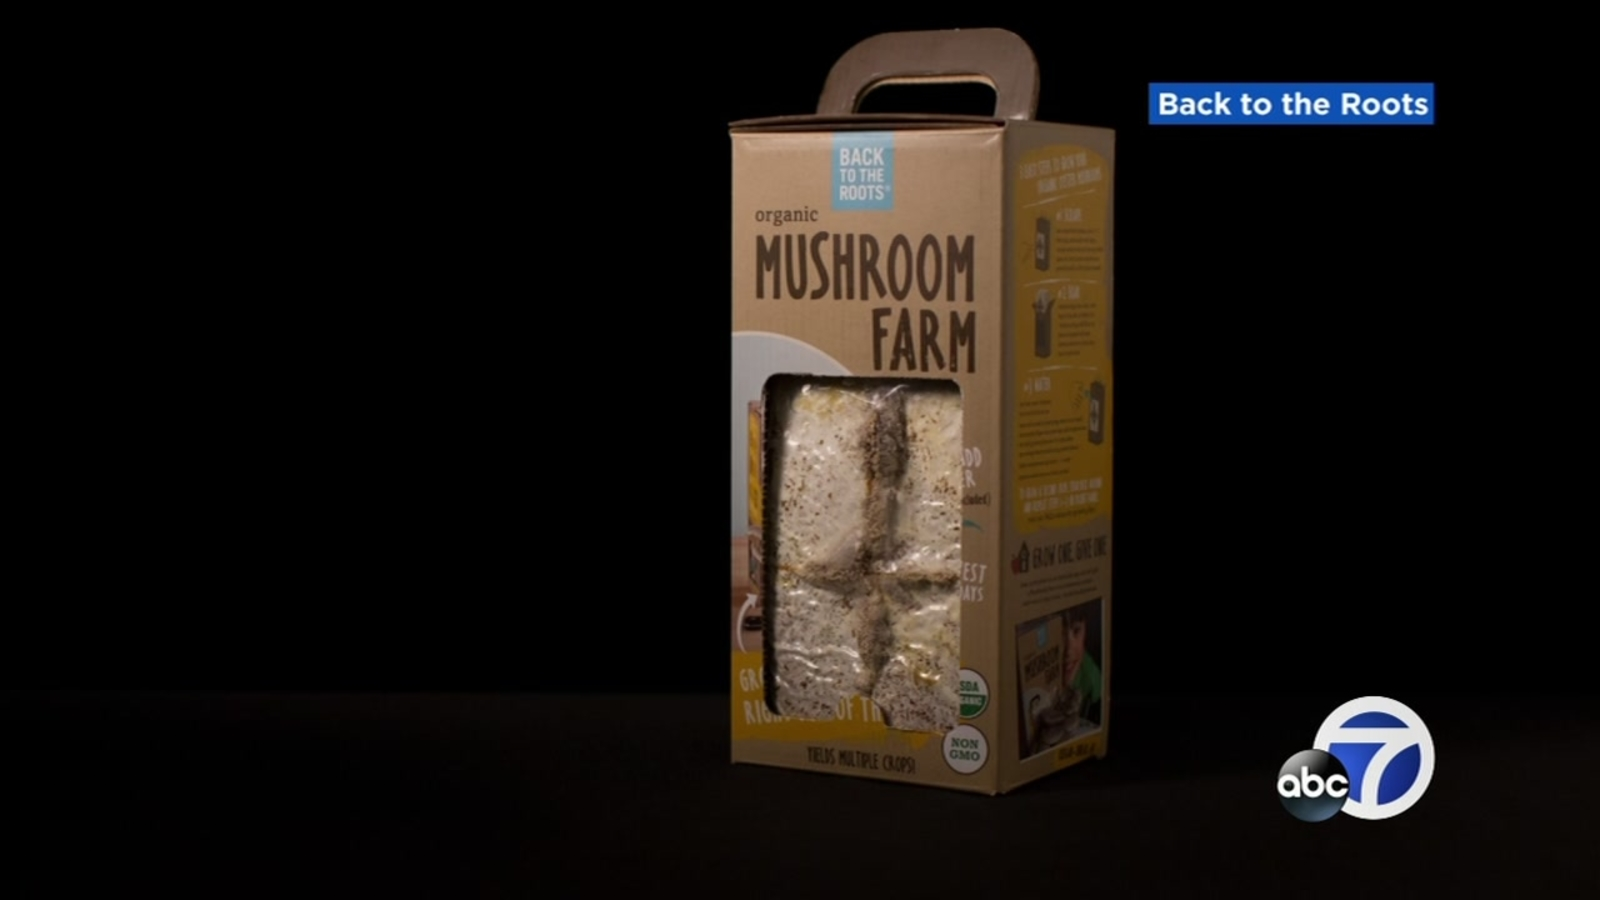 FINNEY'S FRIDAY FREE STUFF: Mushroom growing kits from Back to the Roots  and tickets to Family Day at Oktoberfest by the Bay!